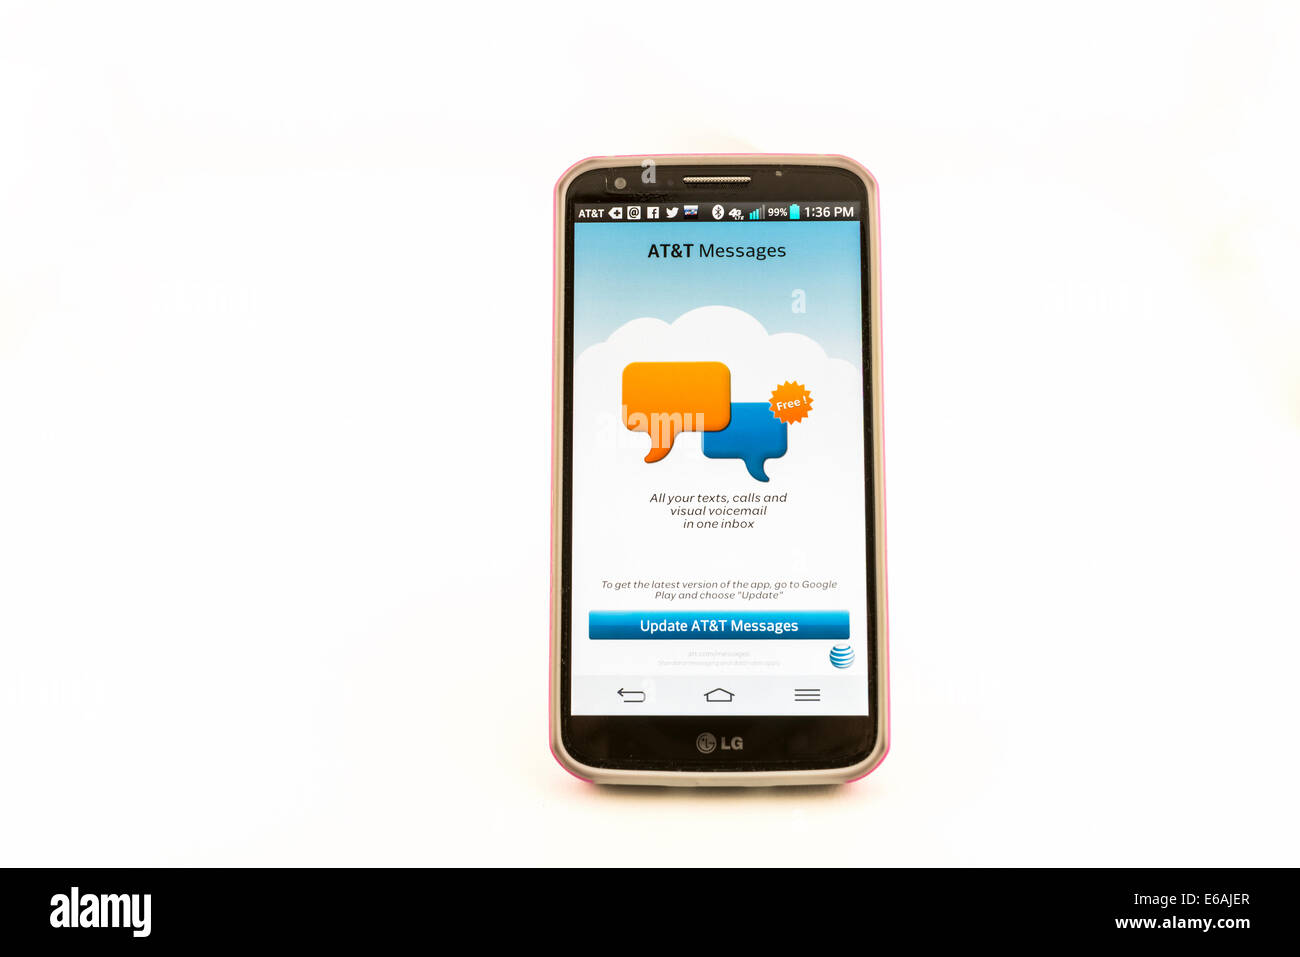 An LG G2 mobile phone showing screen on with the AT&T logo  Isolated